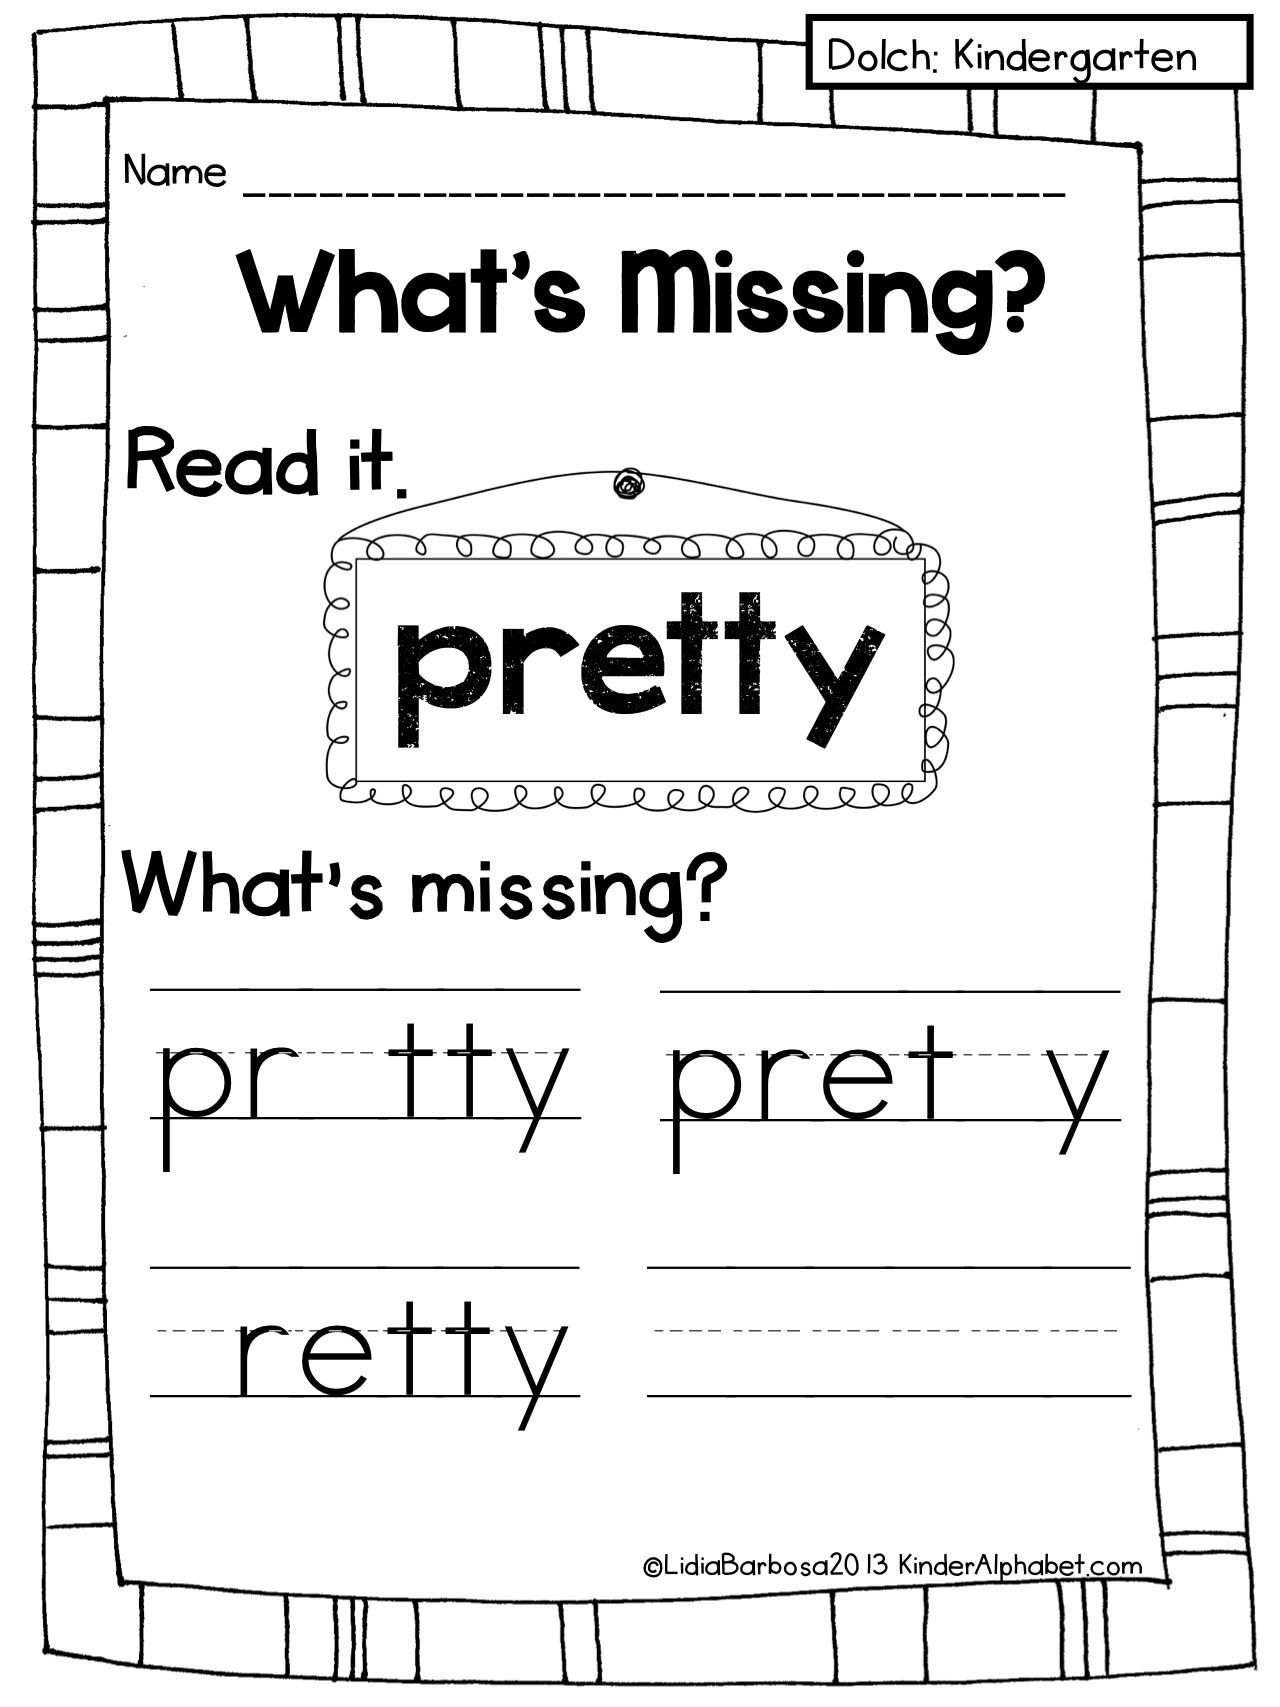 Many Ideas To Develop A Guided Reading Lesson This Sight